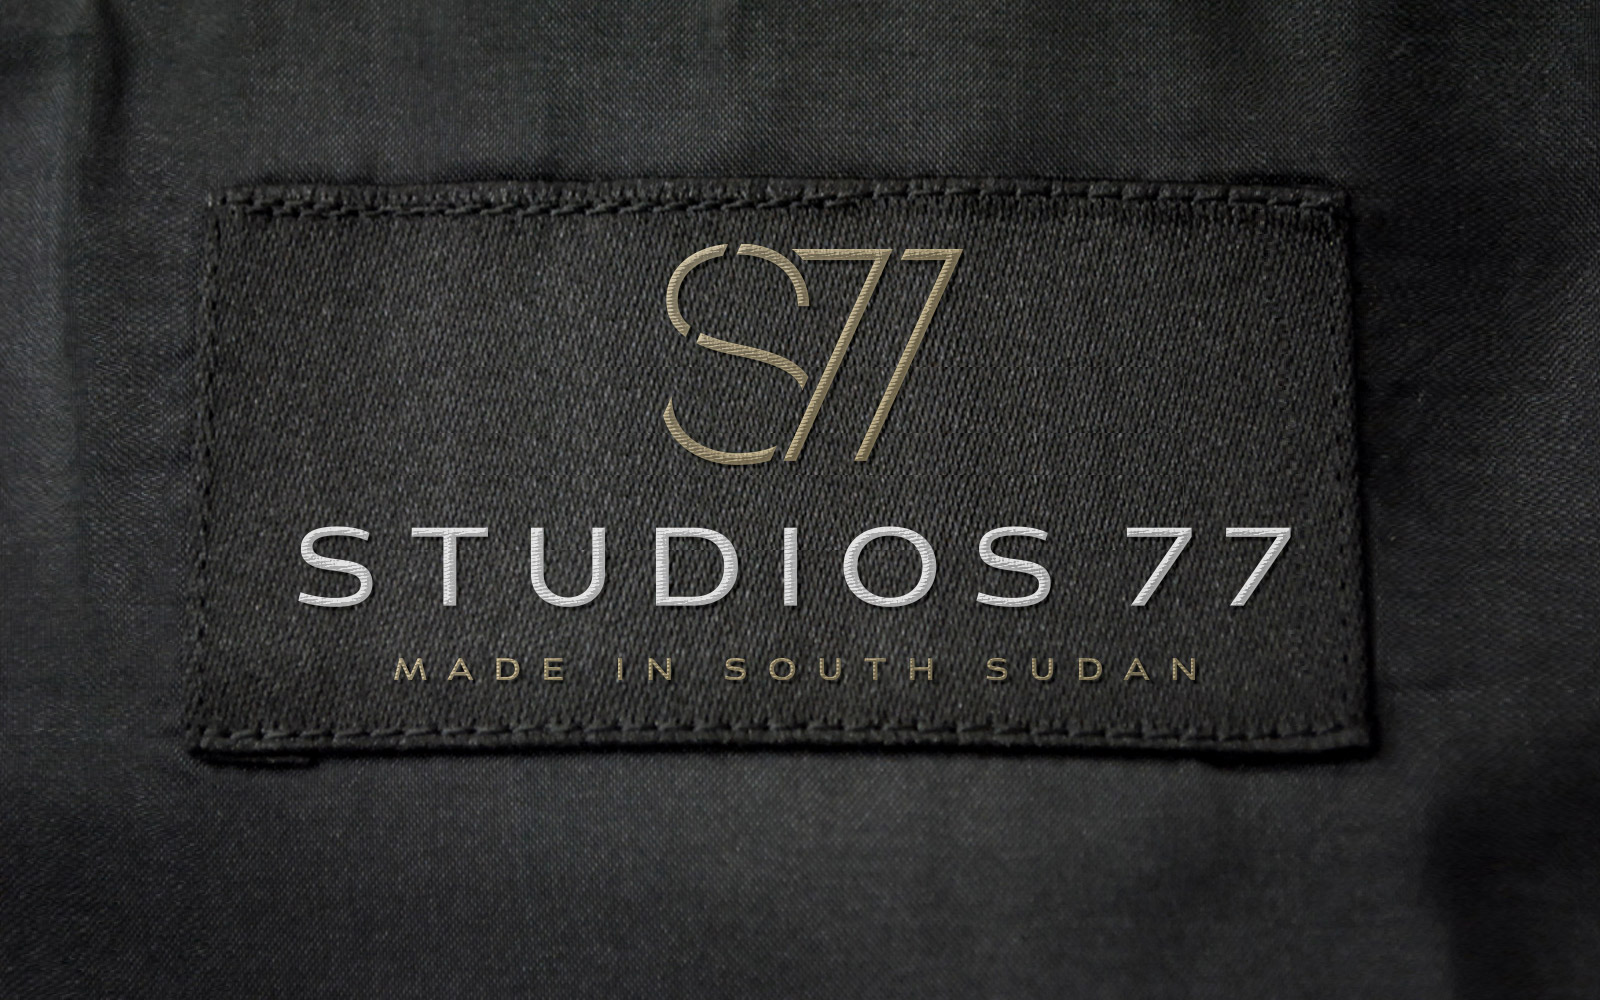 Studios 77 - Label Design